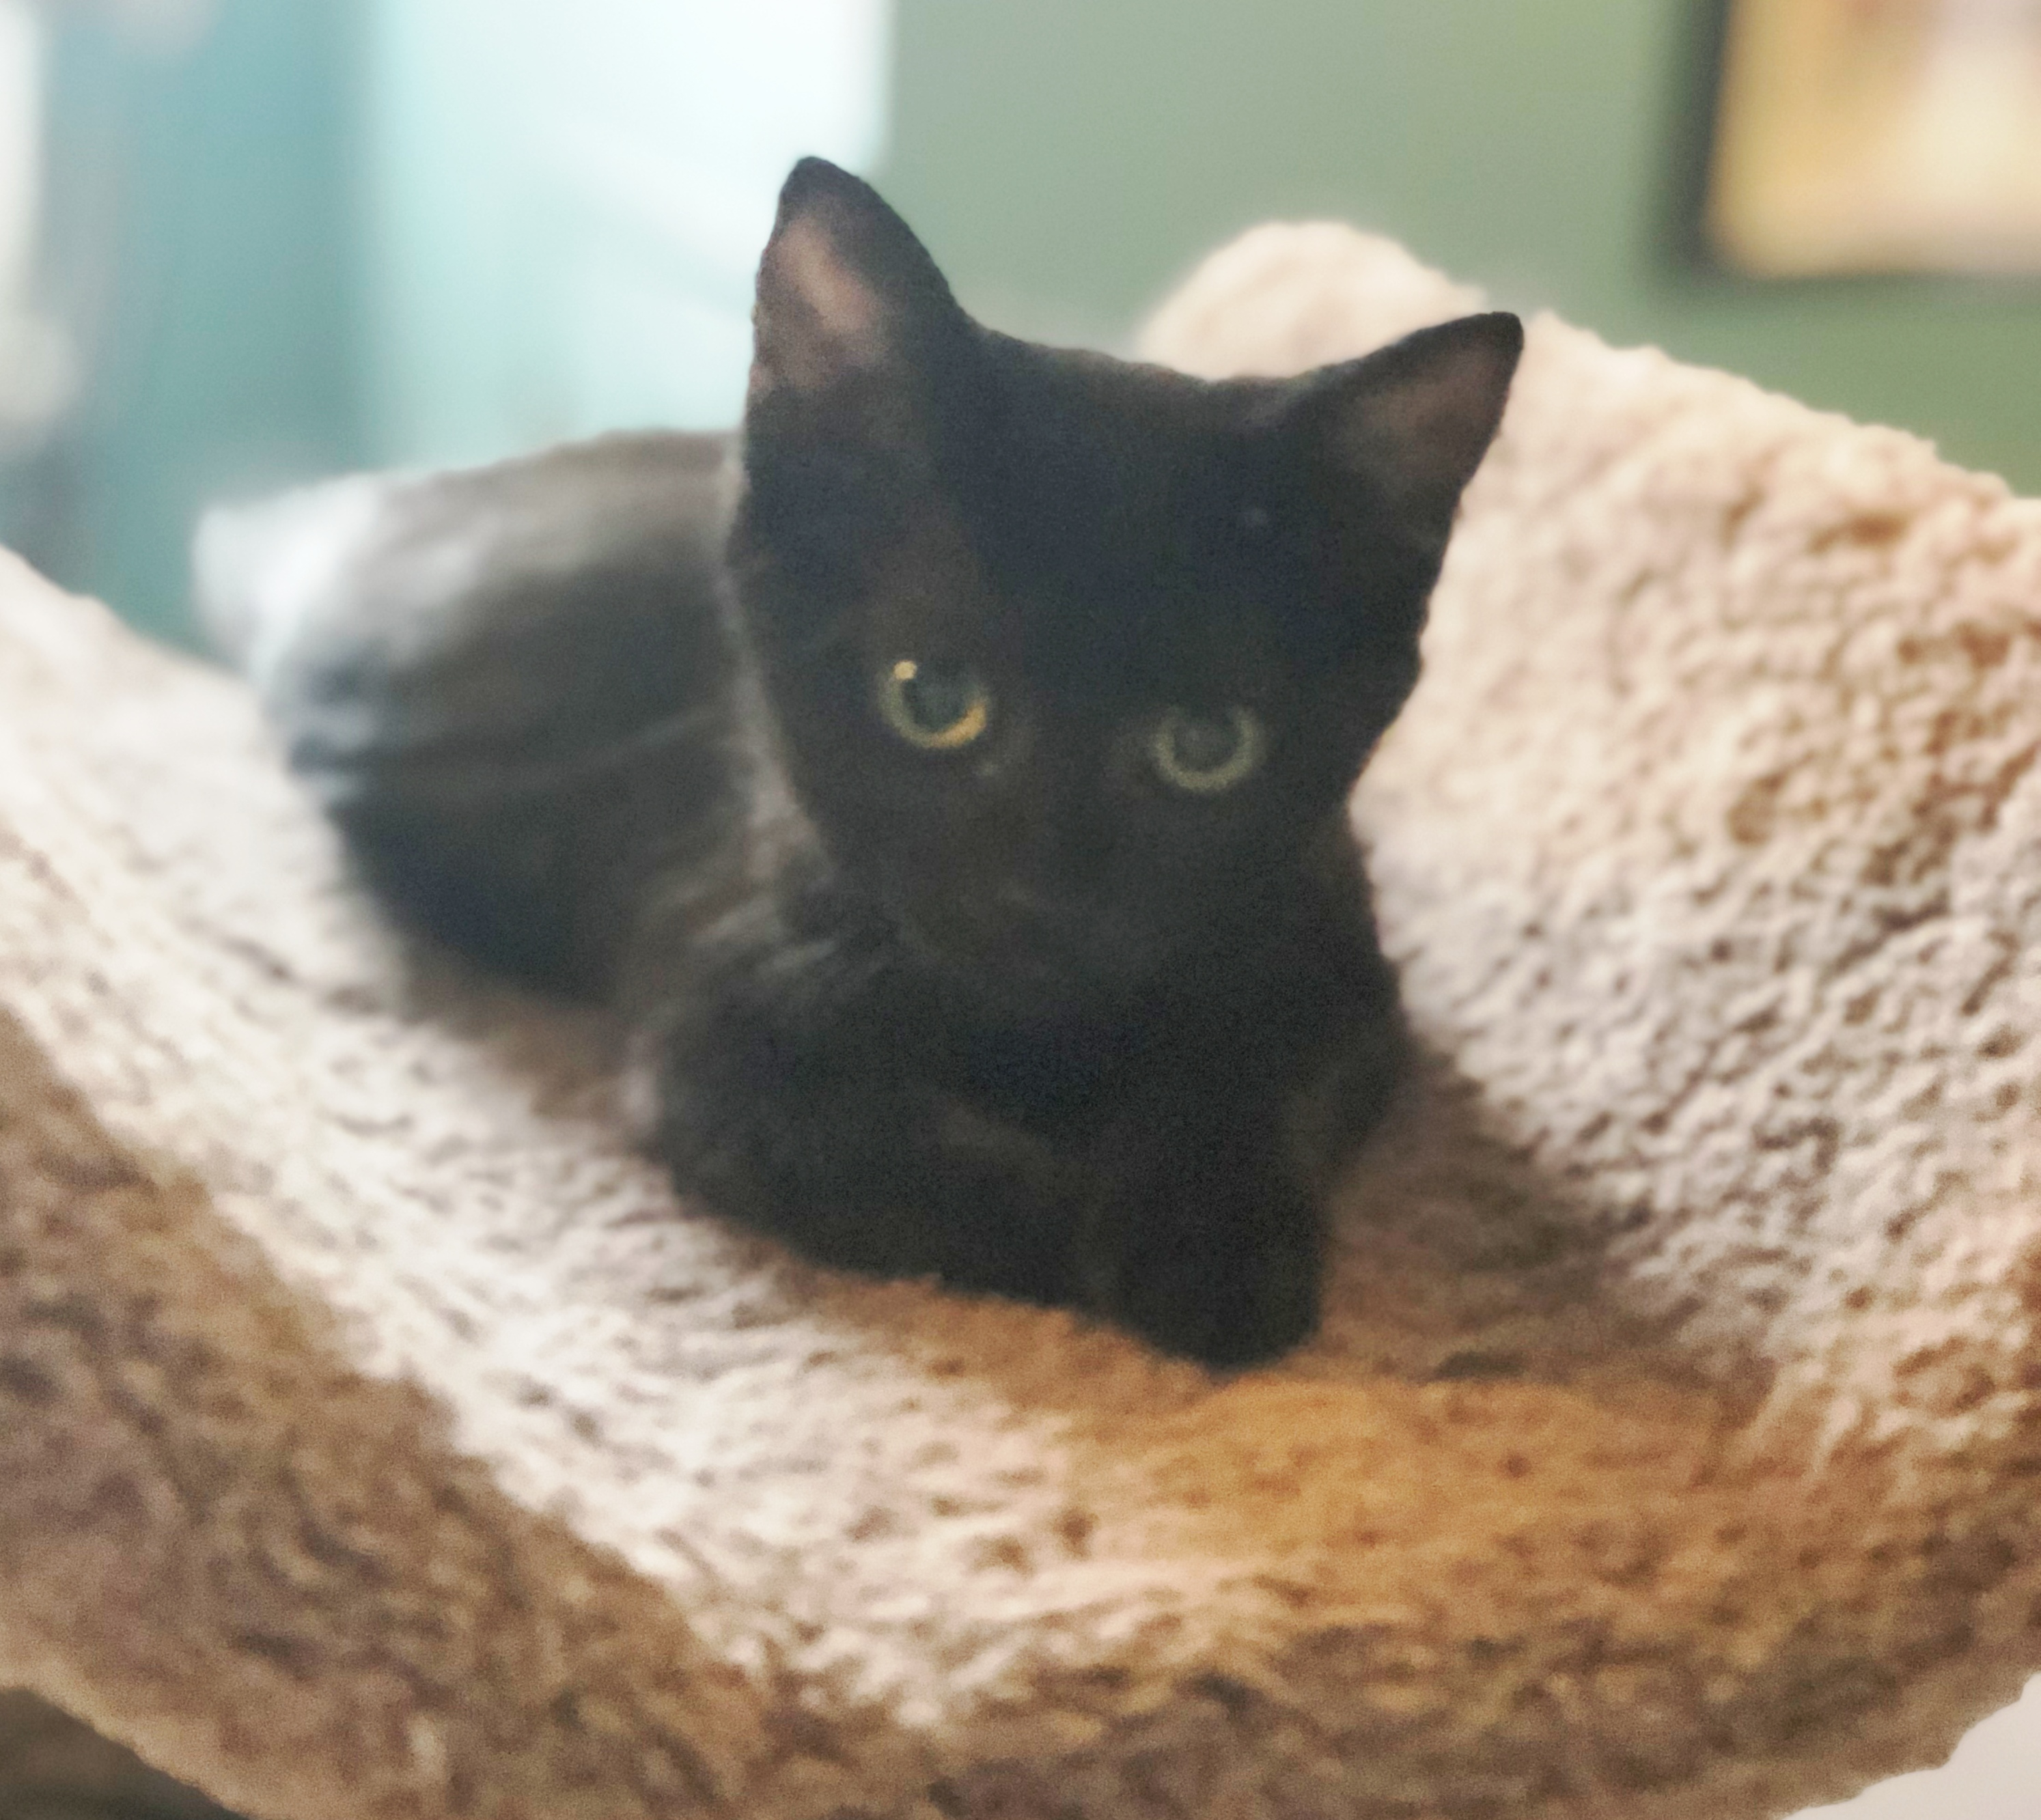 57cc4a75e Jellybean is another miracle Purr Partner Kitty. She came to us as a 2-day  old orphaned bottle baby that needed constant care for the first ...